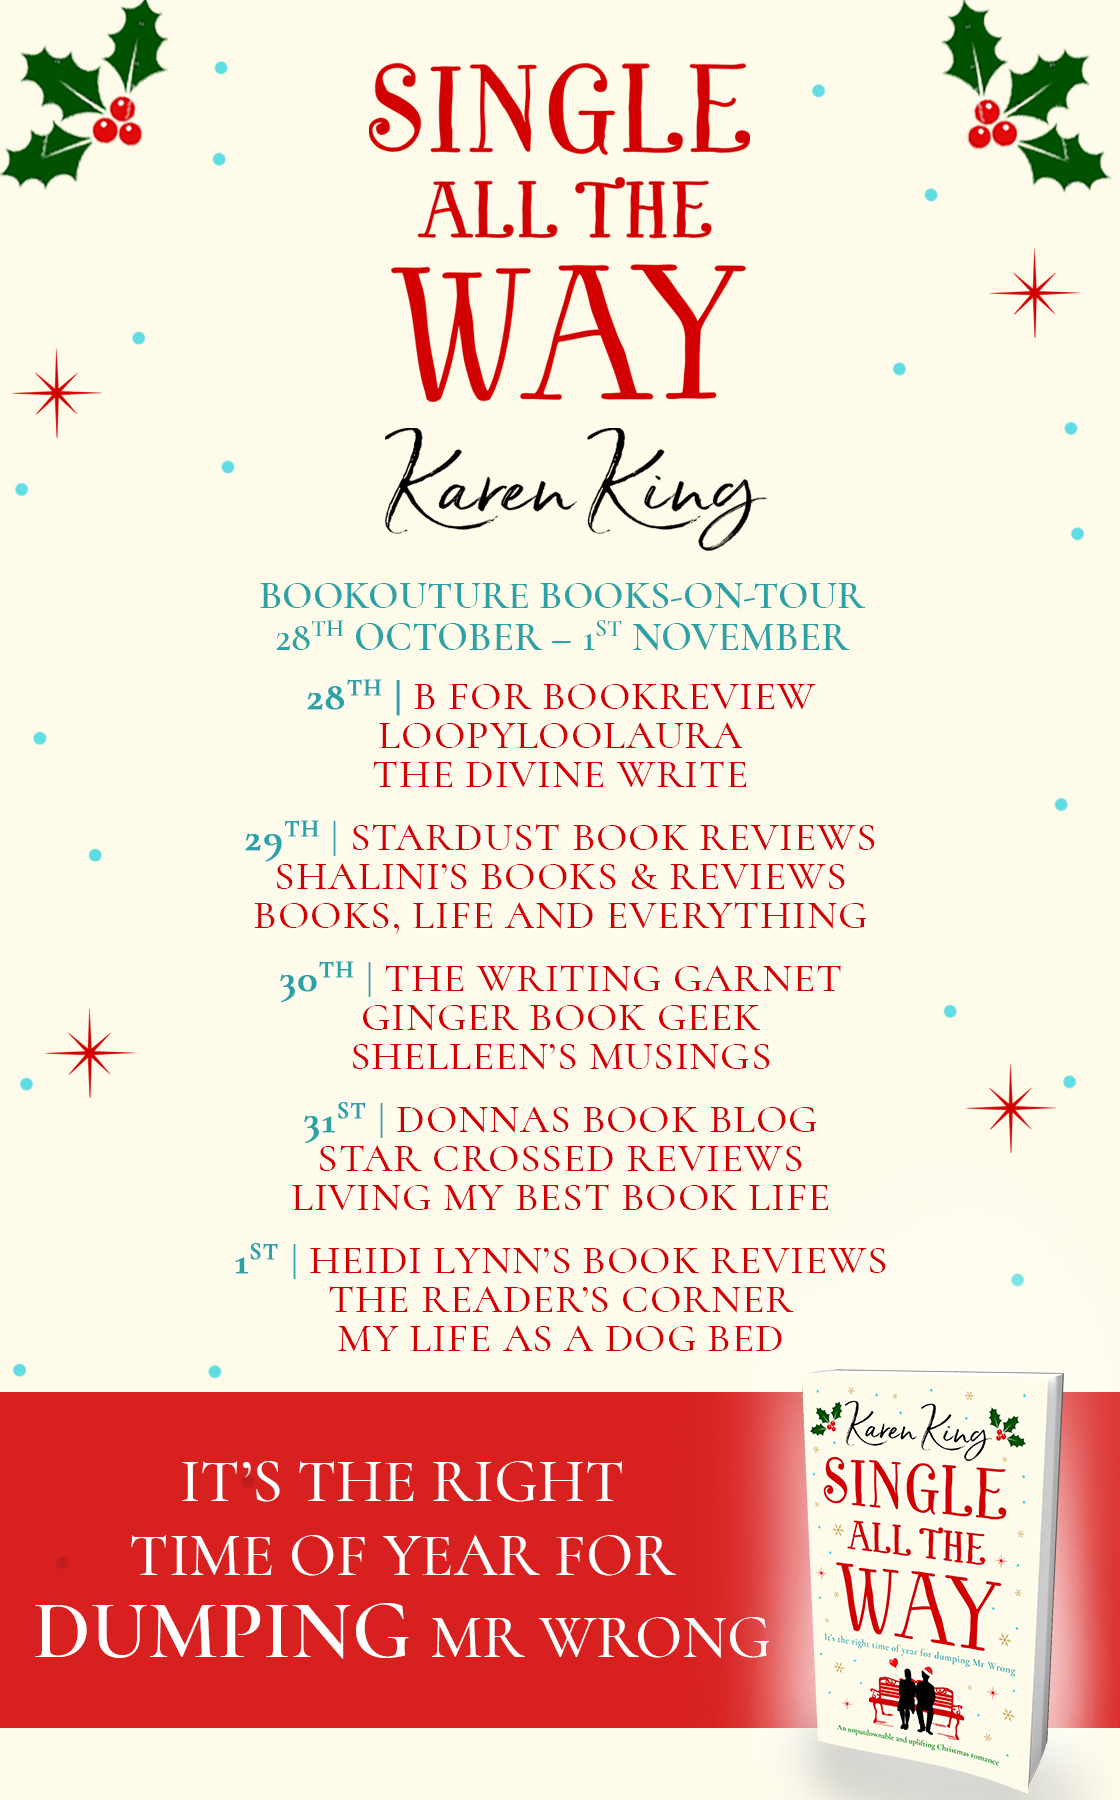 Blog Tour Review: Single All The Way